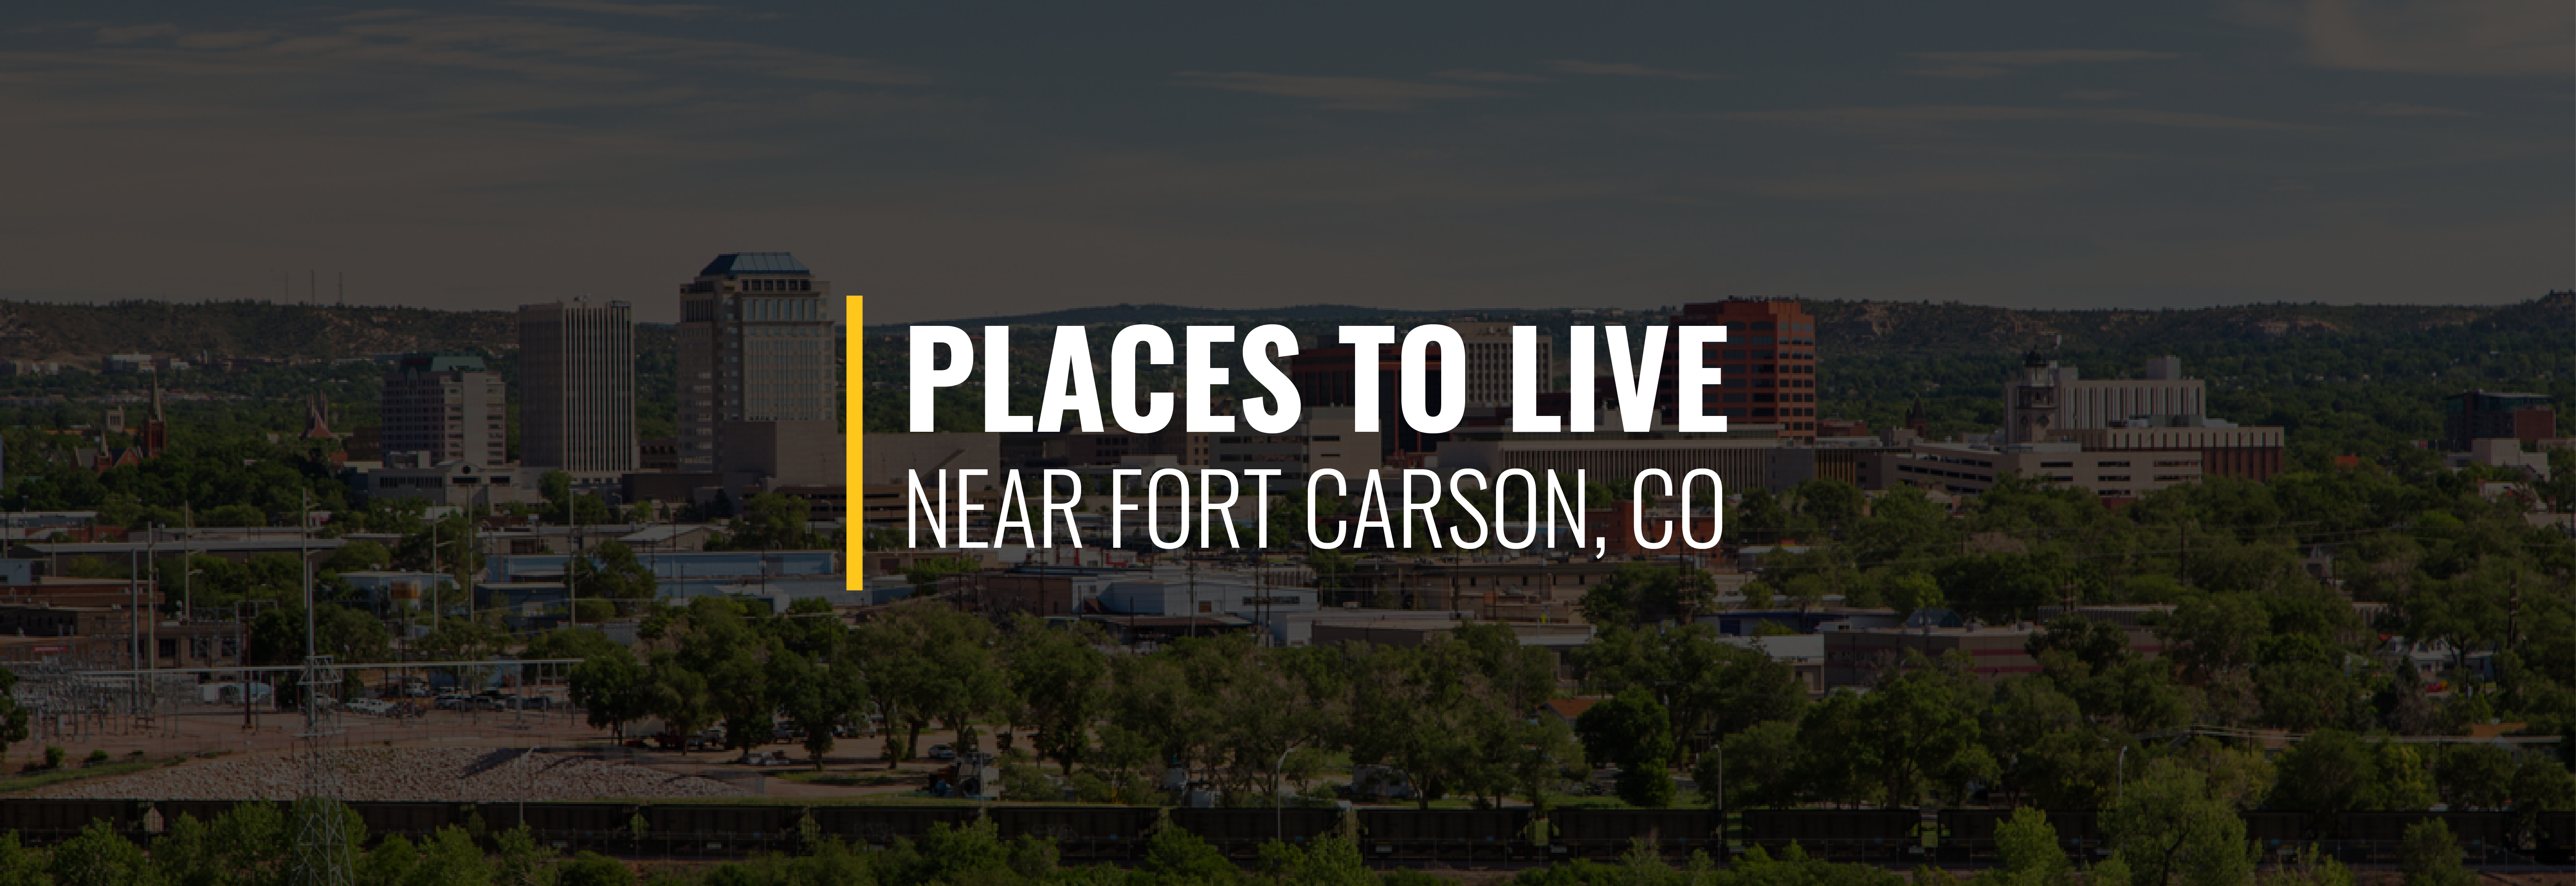 Places to Live Near Fort Carson